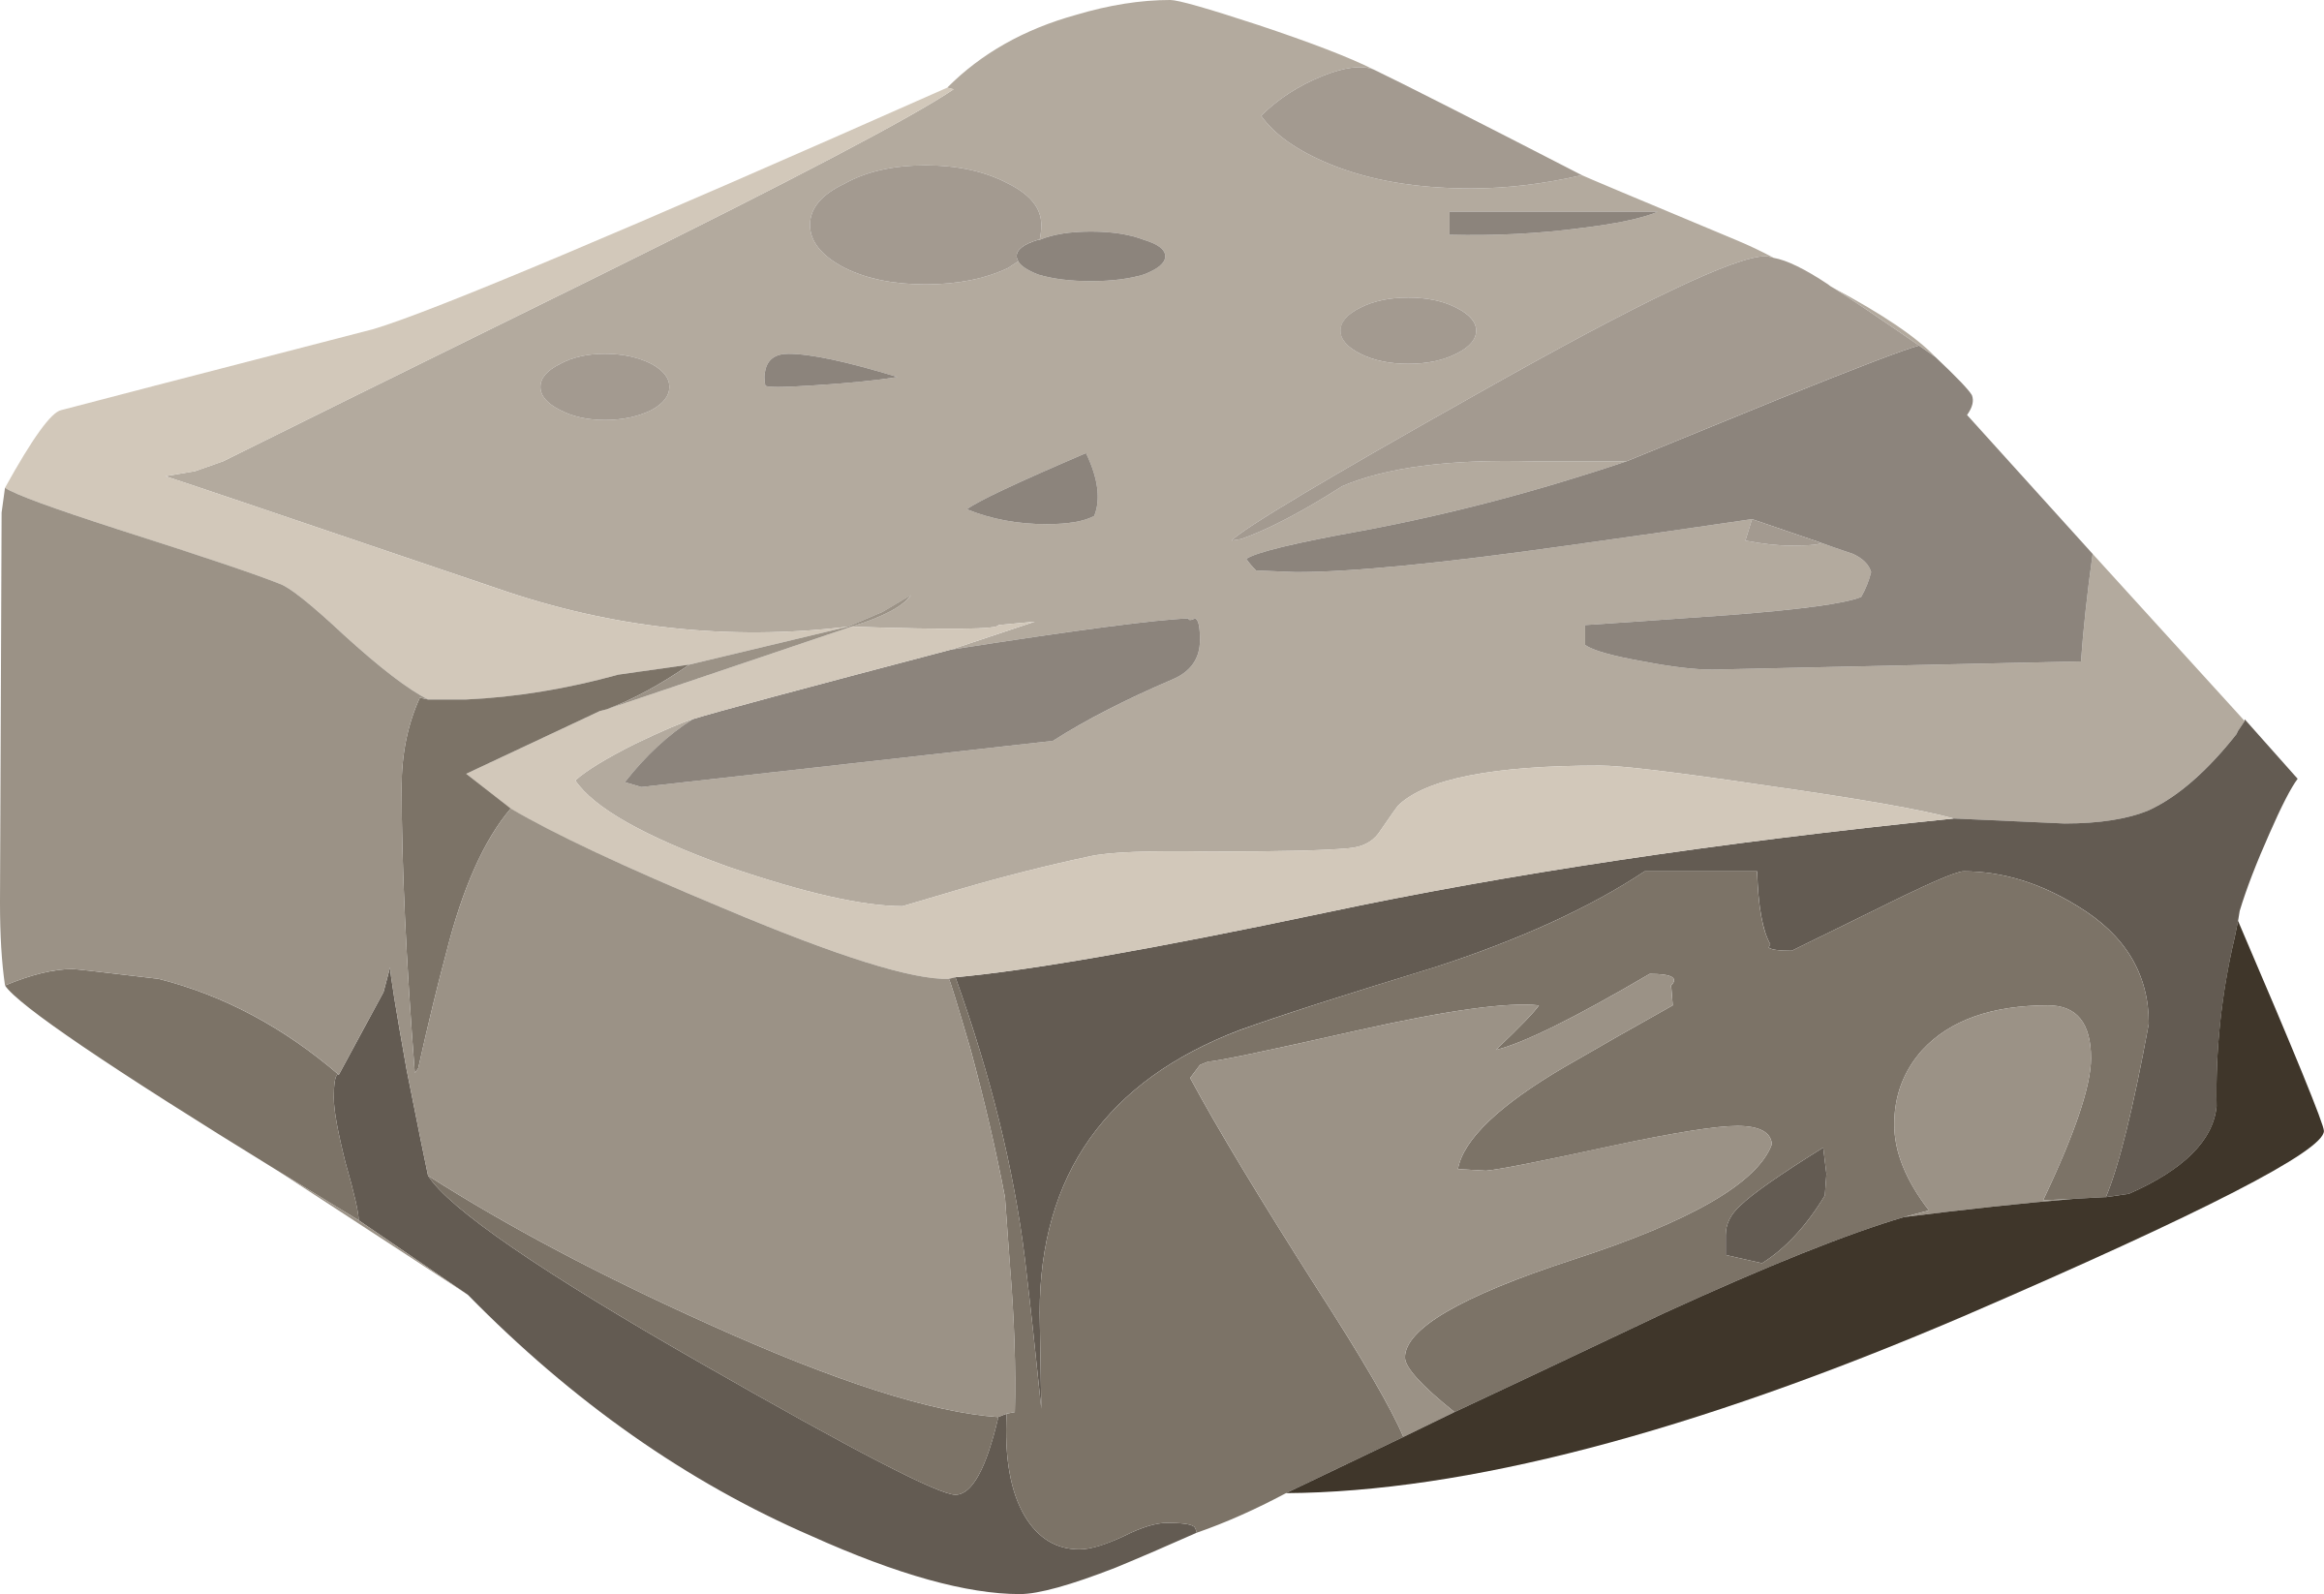 Brown and grey rocks clipart vector free download Computer Icons Rock Clip art - stones and rocks png download - 2400 ... vector free download